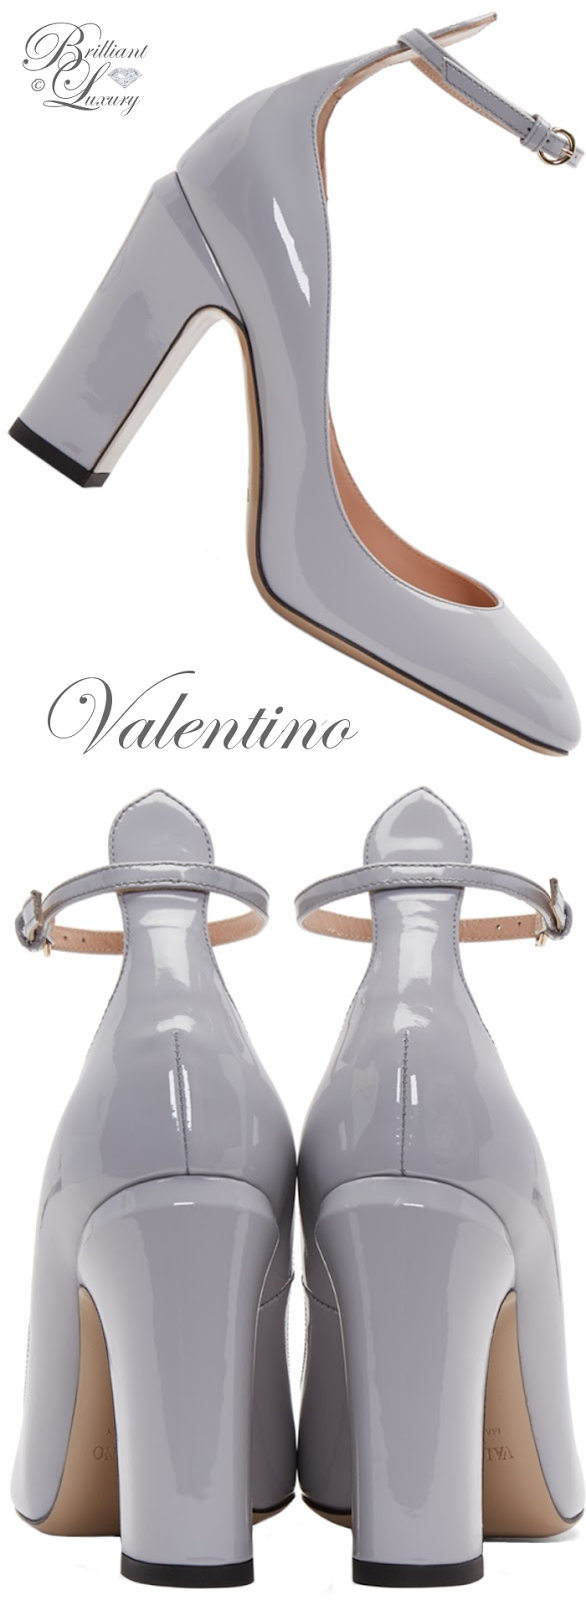 Brilliant Luxury ♦ Valentino Grey Tango Mary Jane Heels